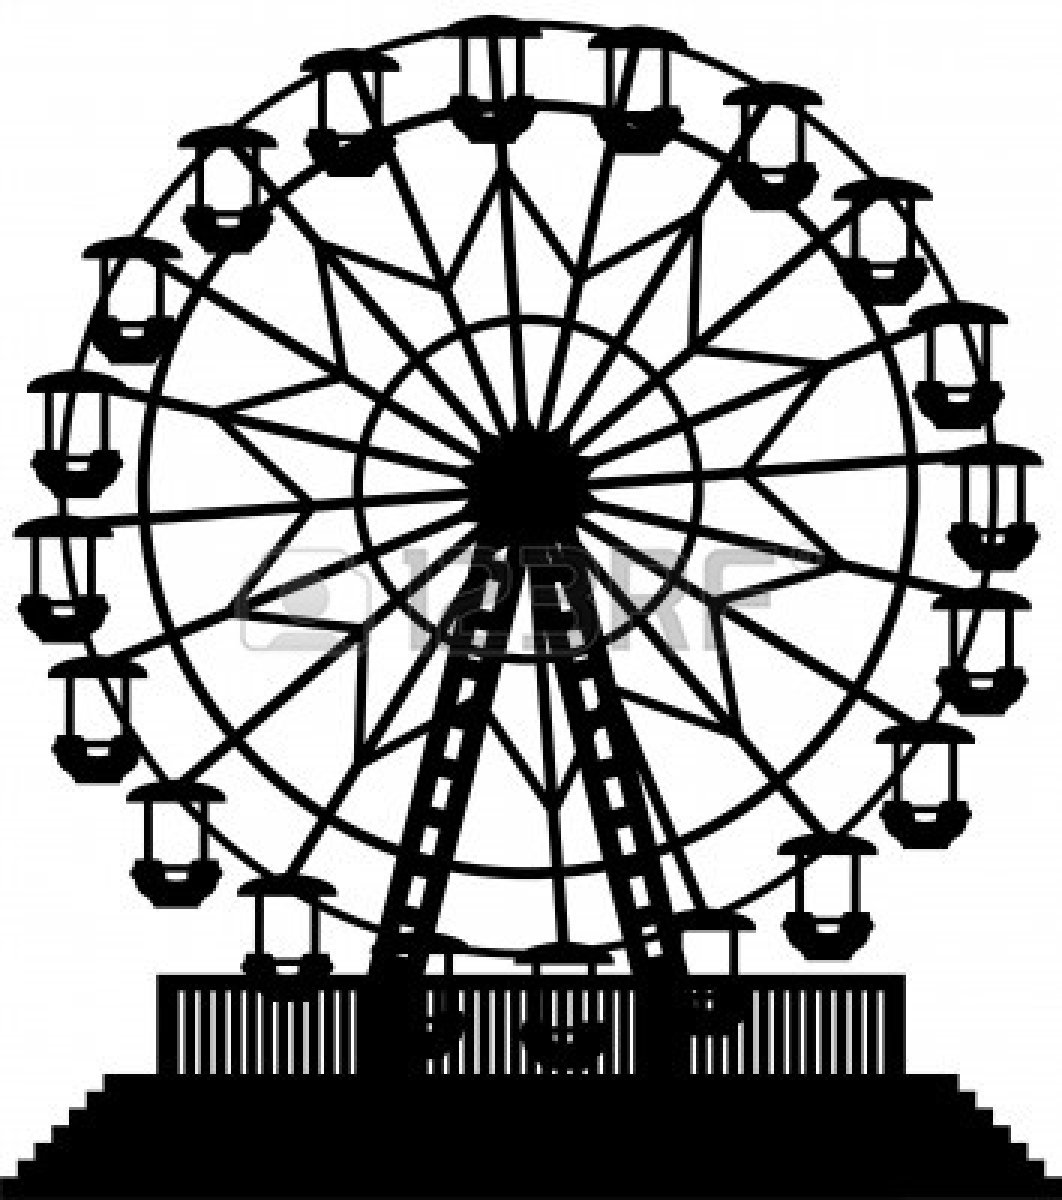 Drawn ferris wheel vintage Free Ferris Clipart Wheel clipart